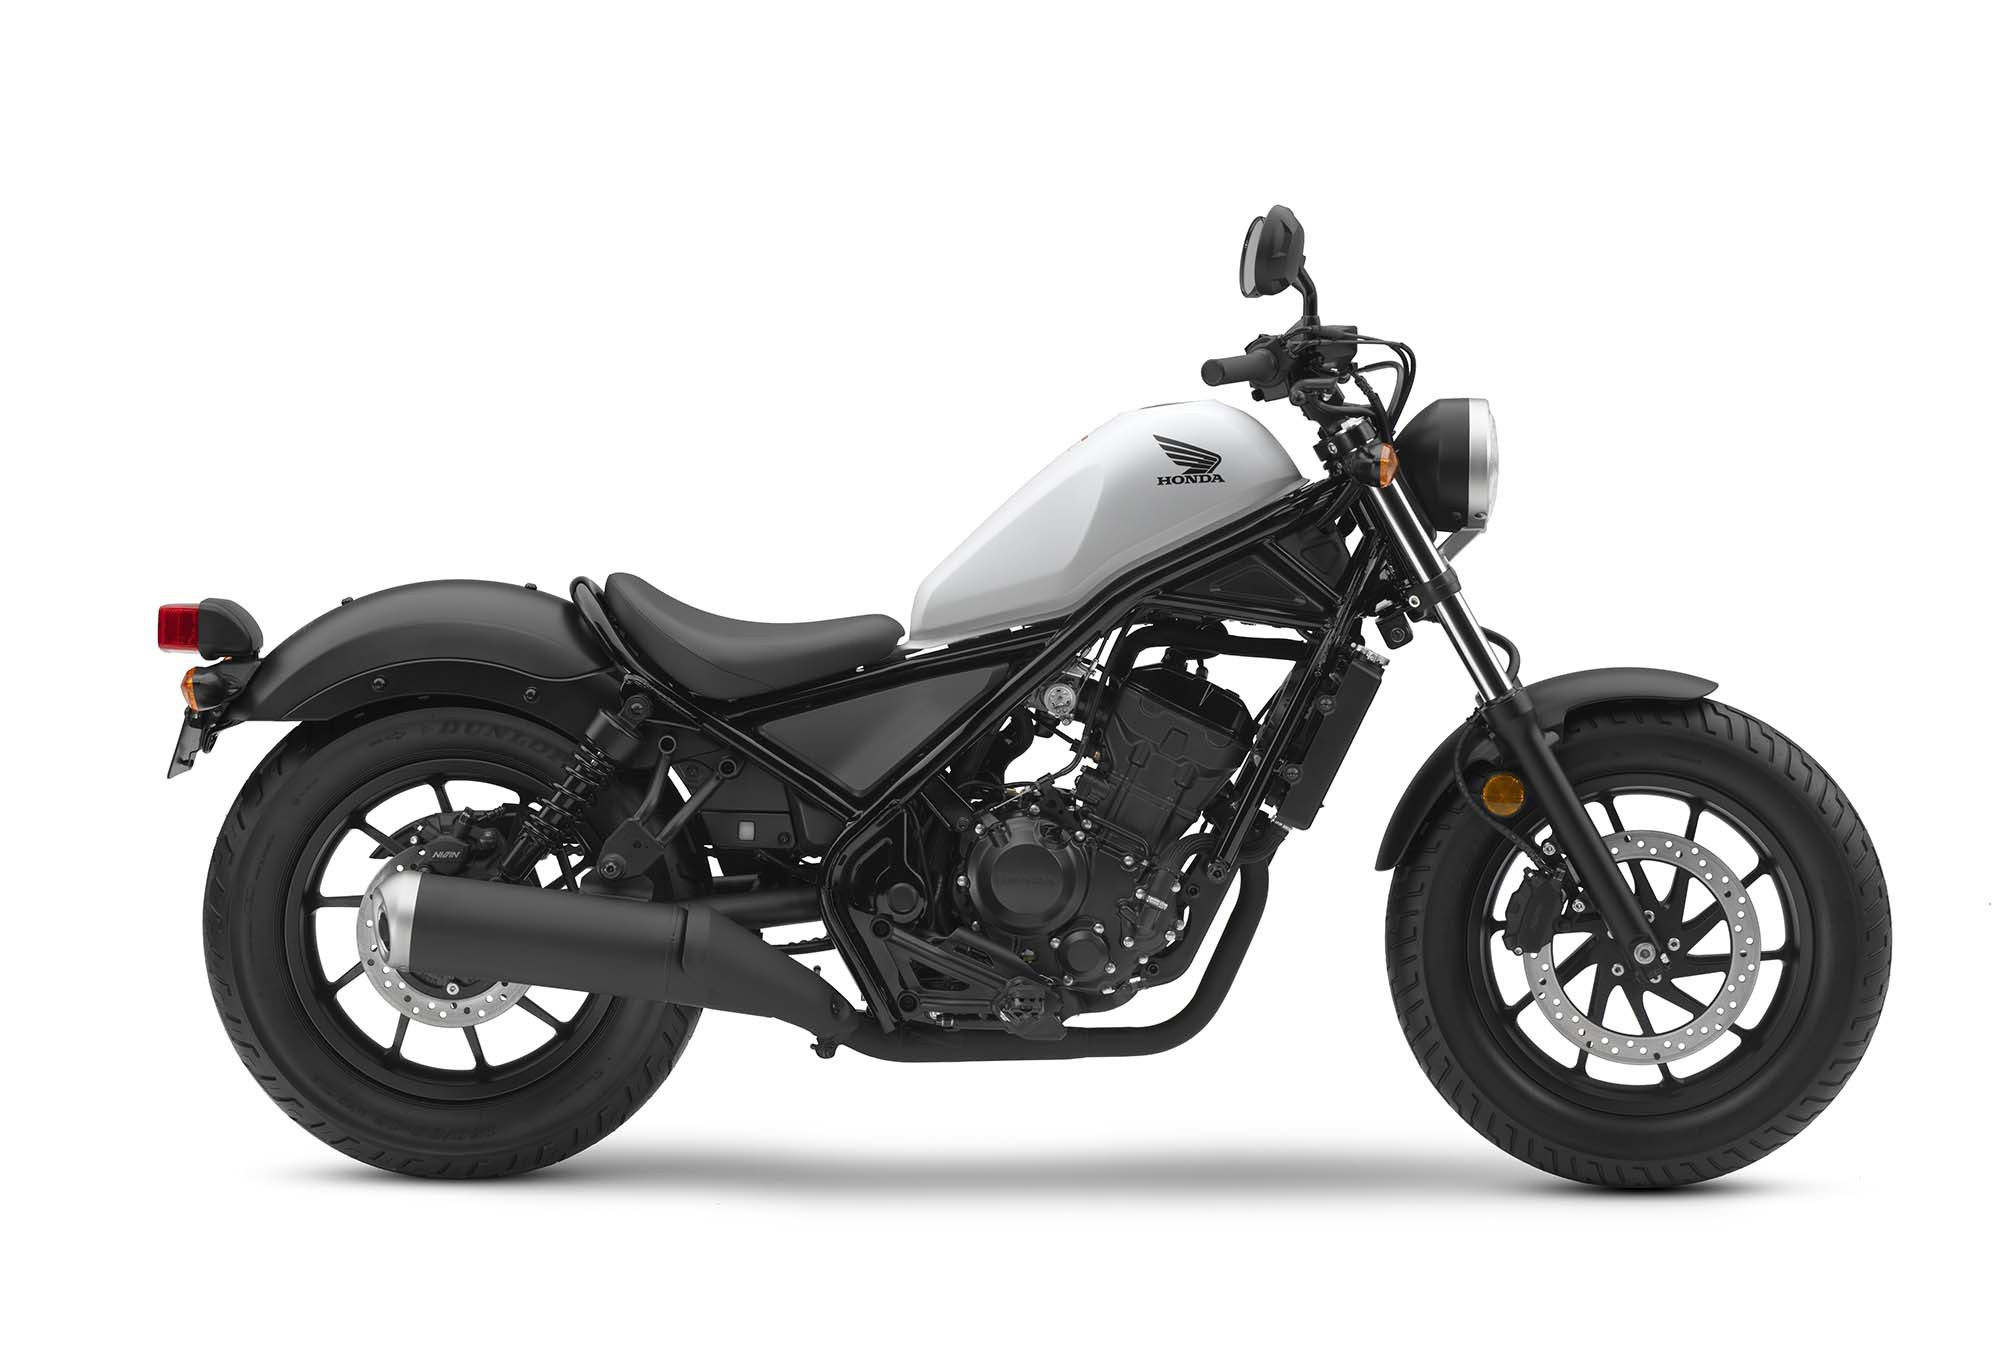 2017 Honda Rebel 300 01